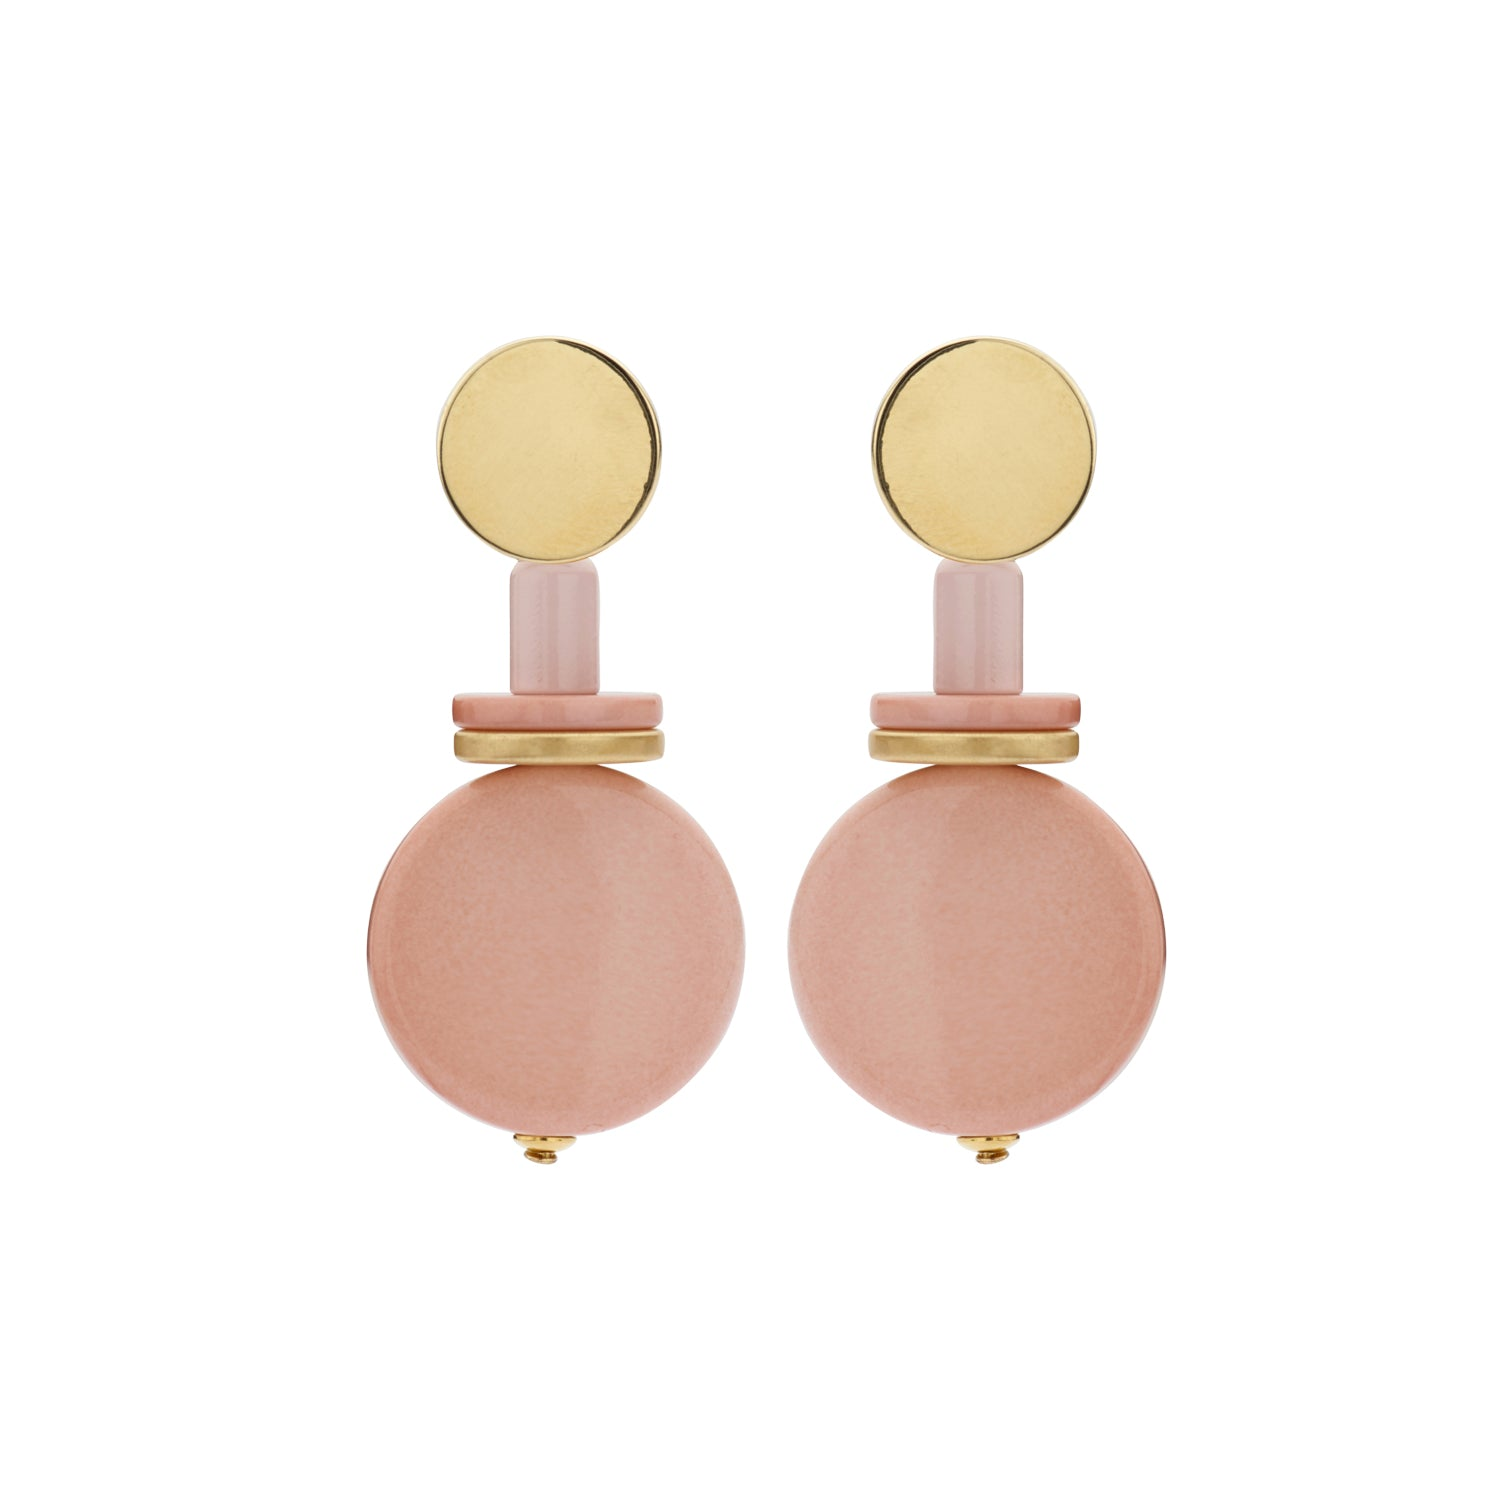 Naomi disk flat nude earrings - Souvenirs de Pomme